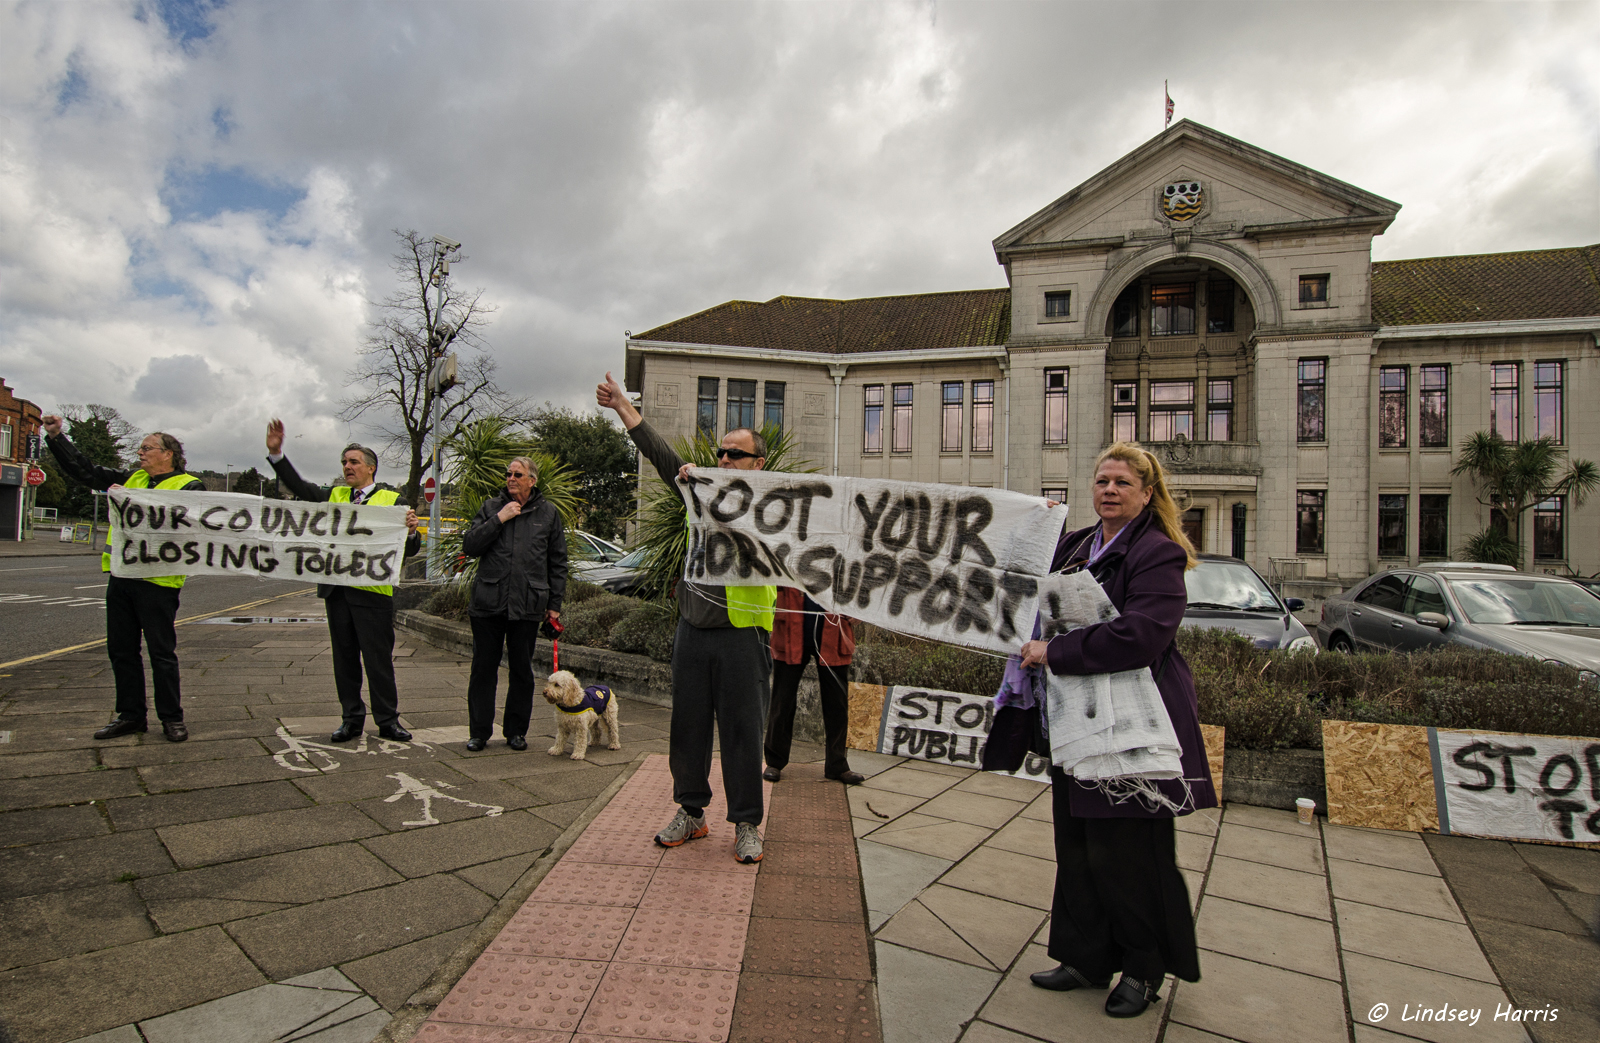 Demonstration against closure of lavatories in Poole.